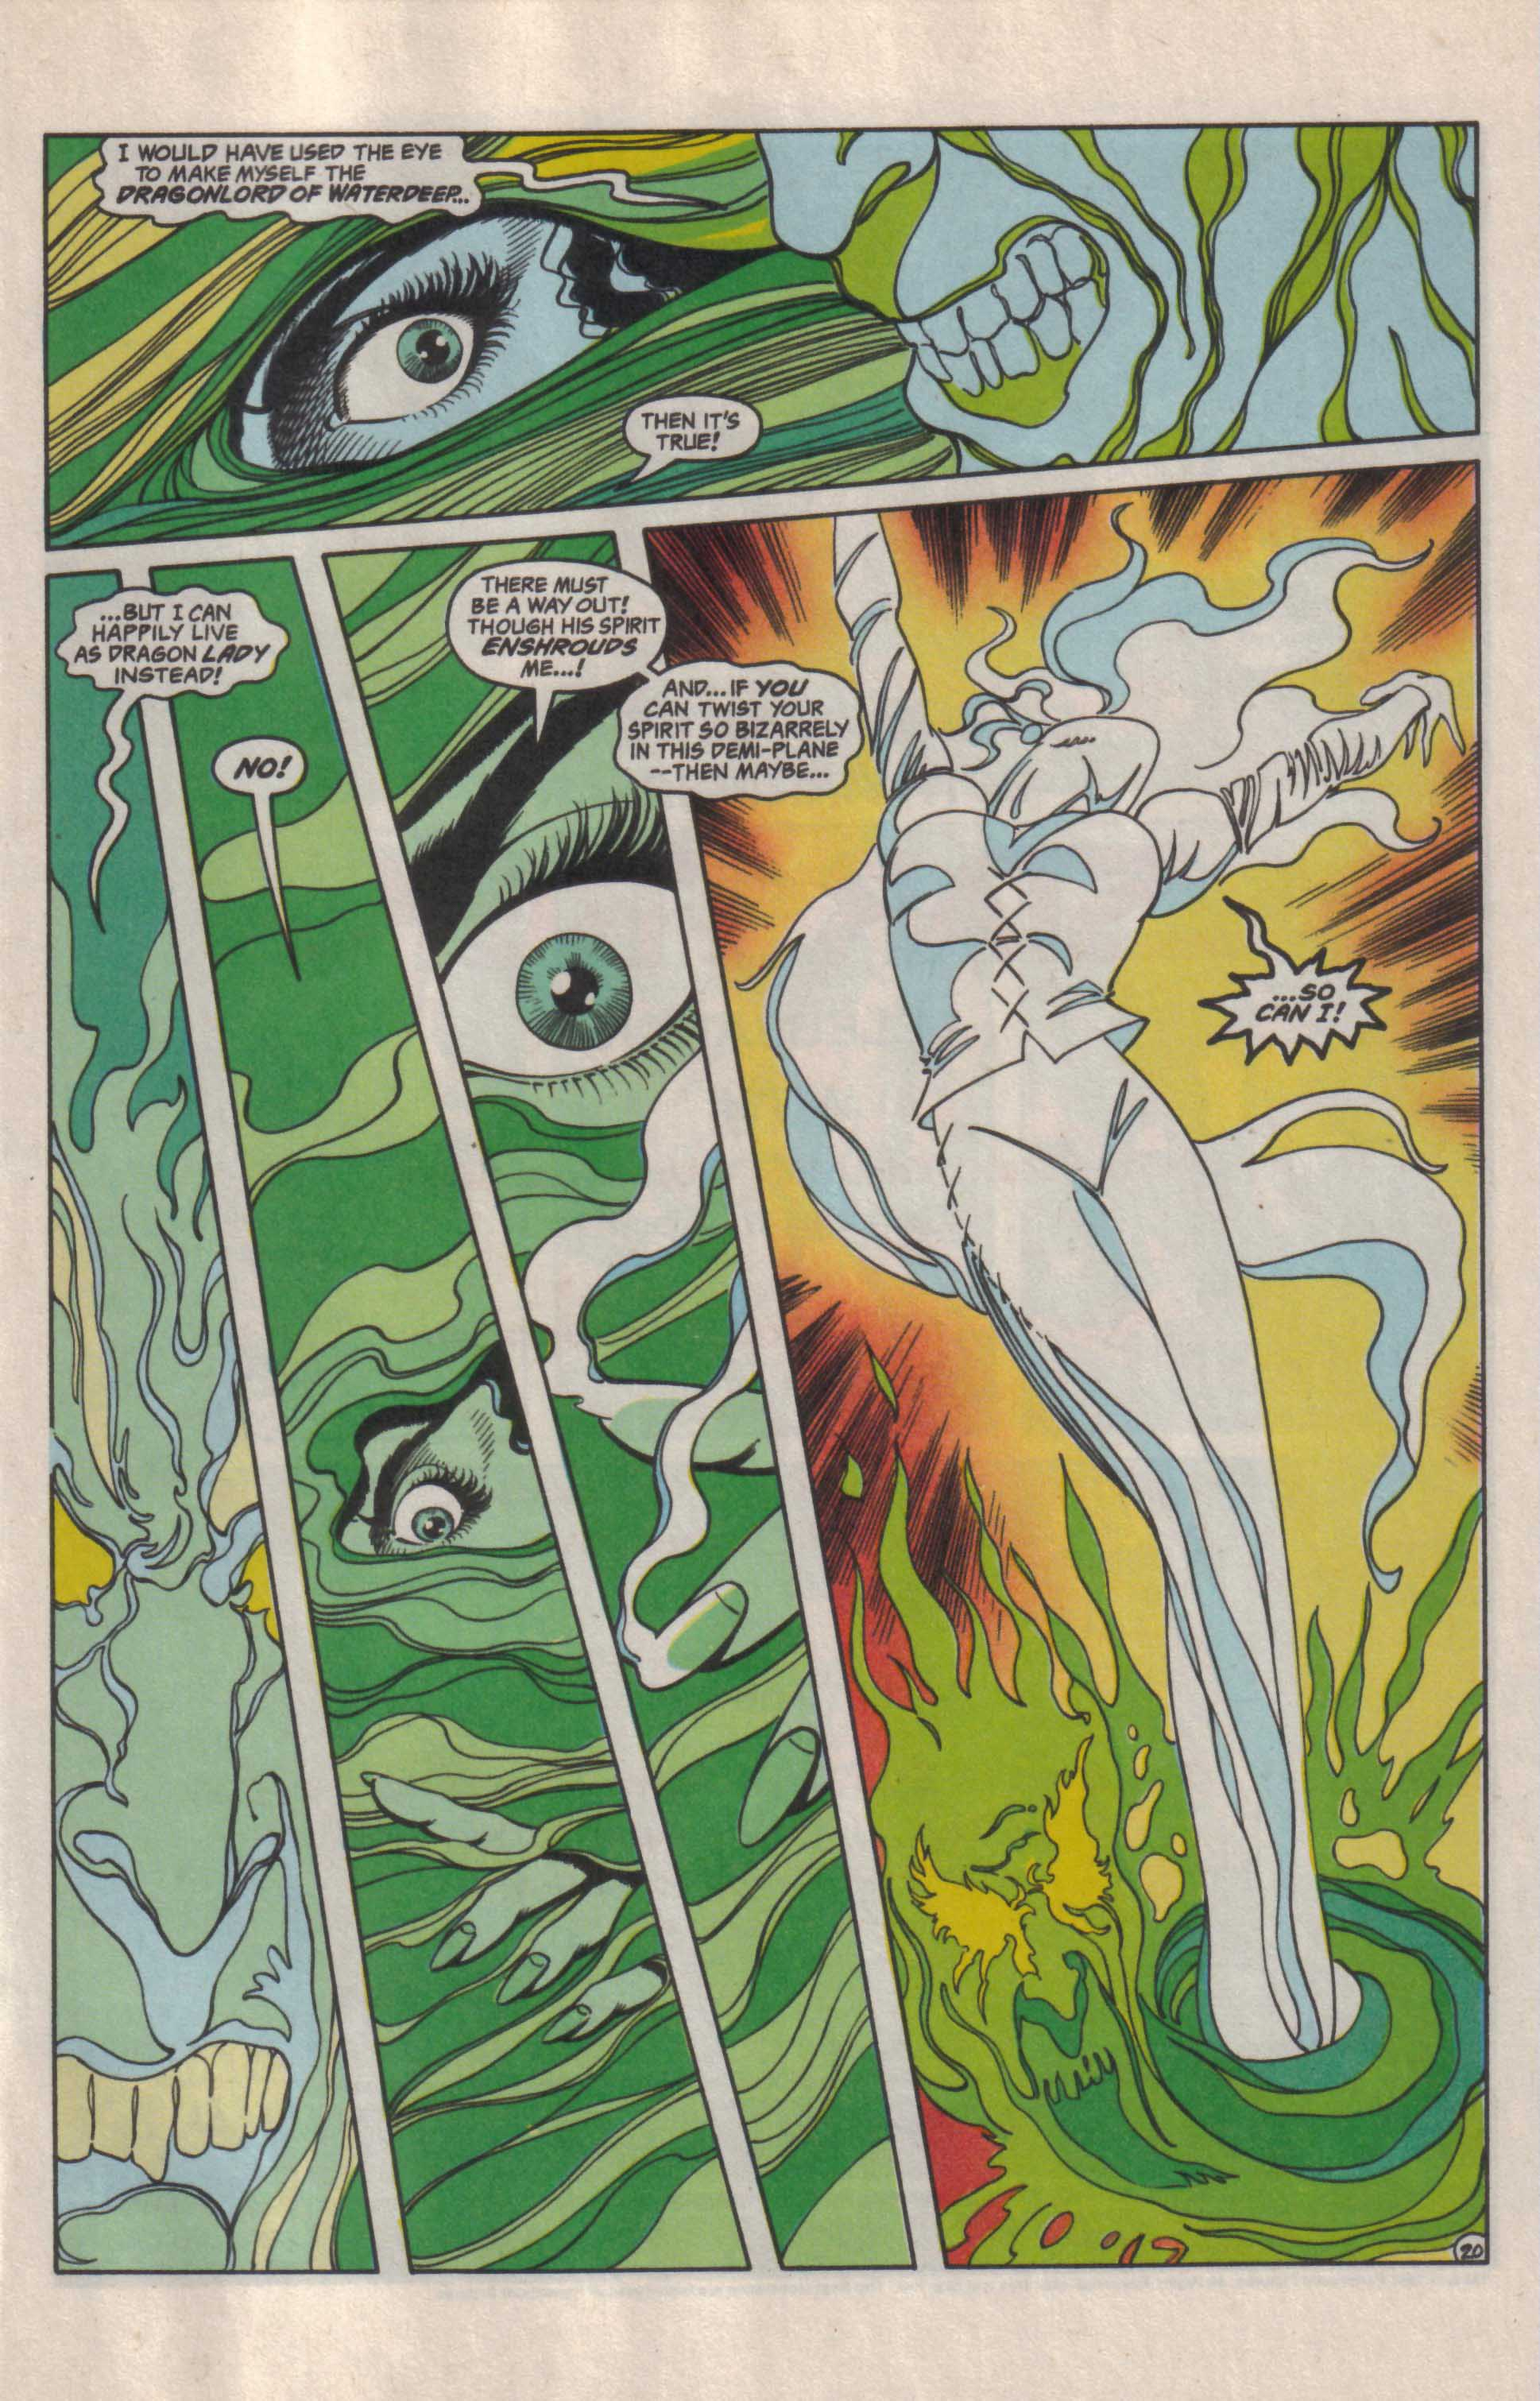 Read online Advanced Dungeons & Dragons comic -  Issue #29 - 21